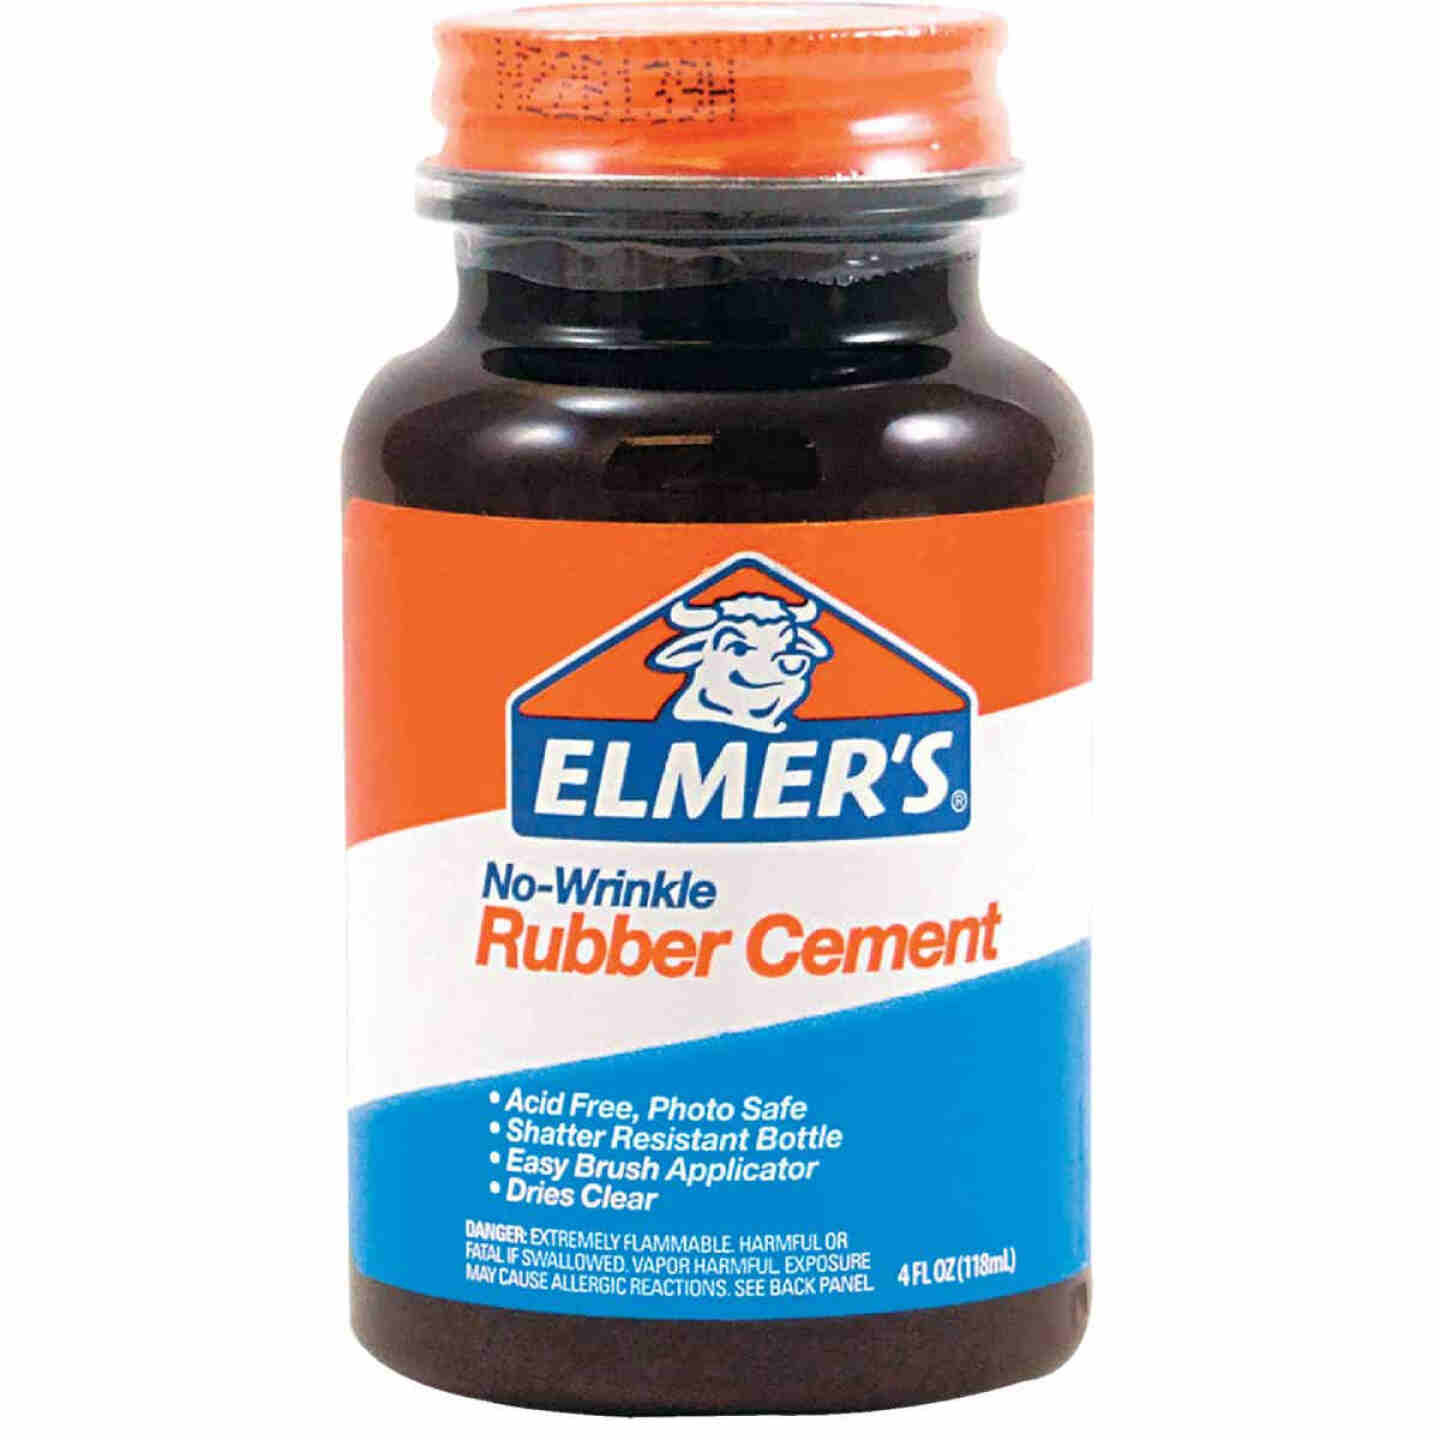 Elmer's 4 Oz. Rubber Cement Adhesive Image 1